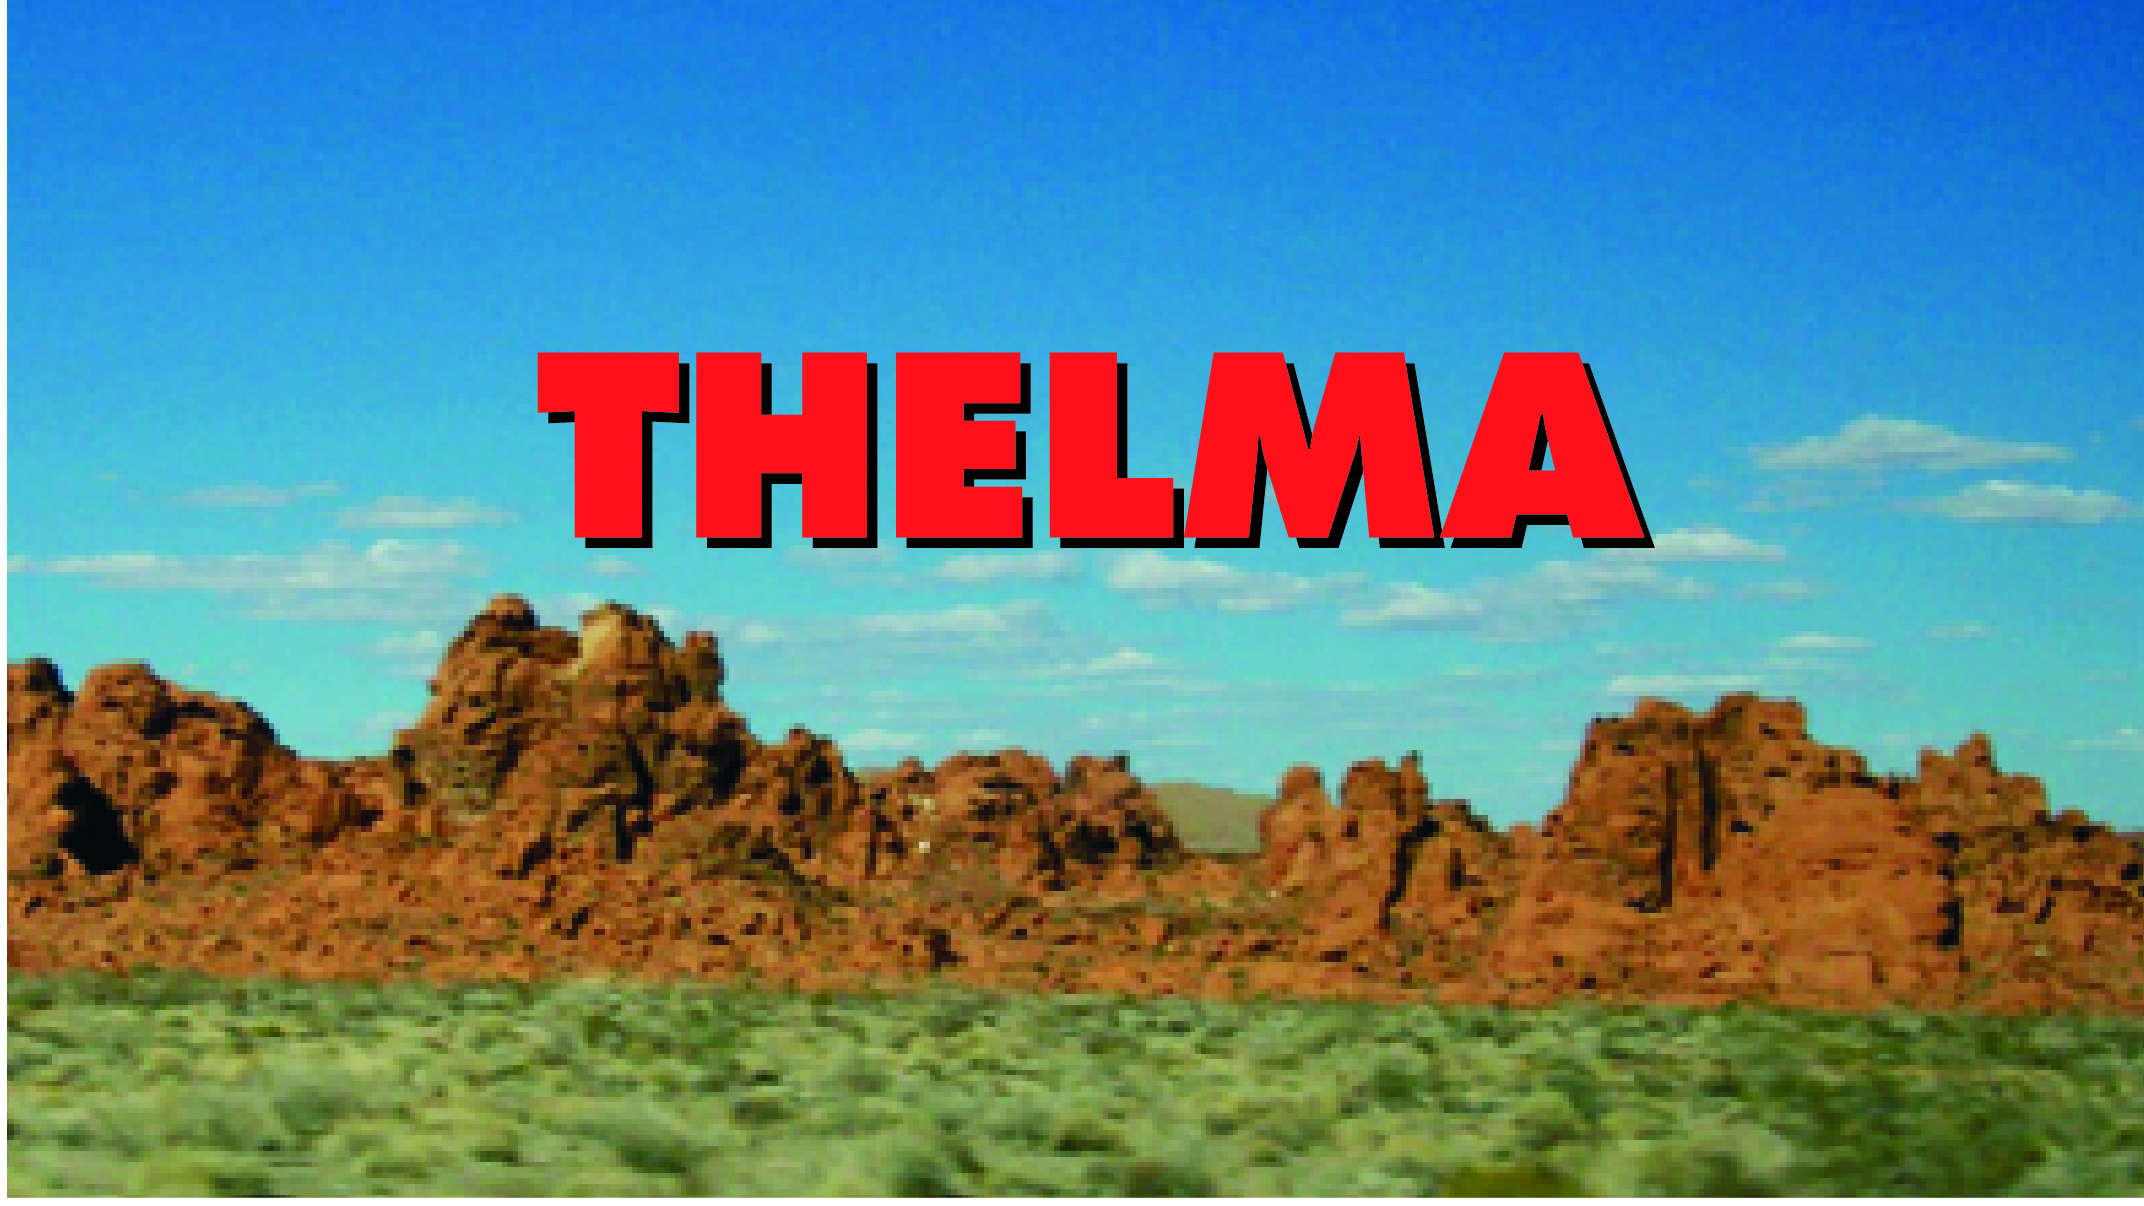 'Thelma 4 Single Frame' Therapy Short Film, DHM